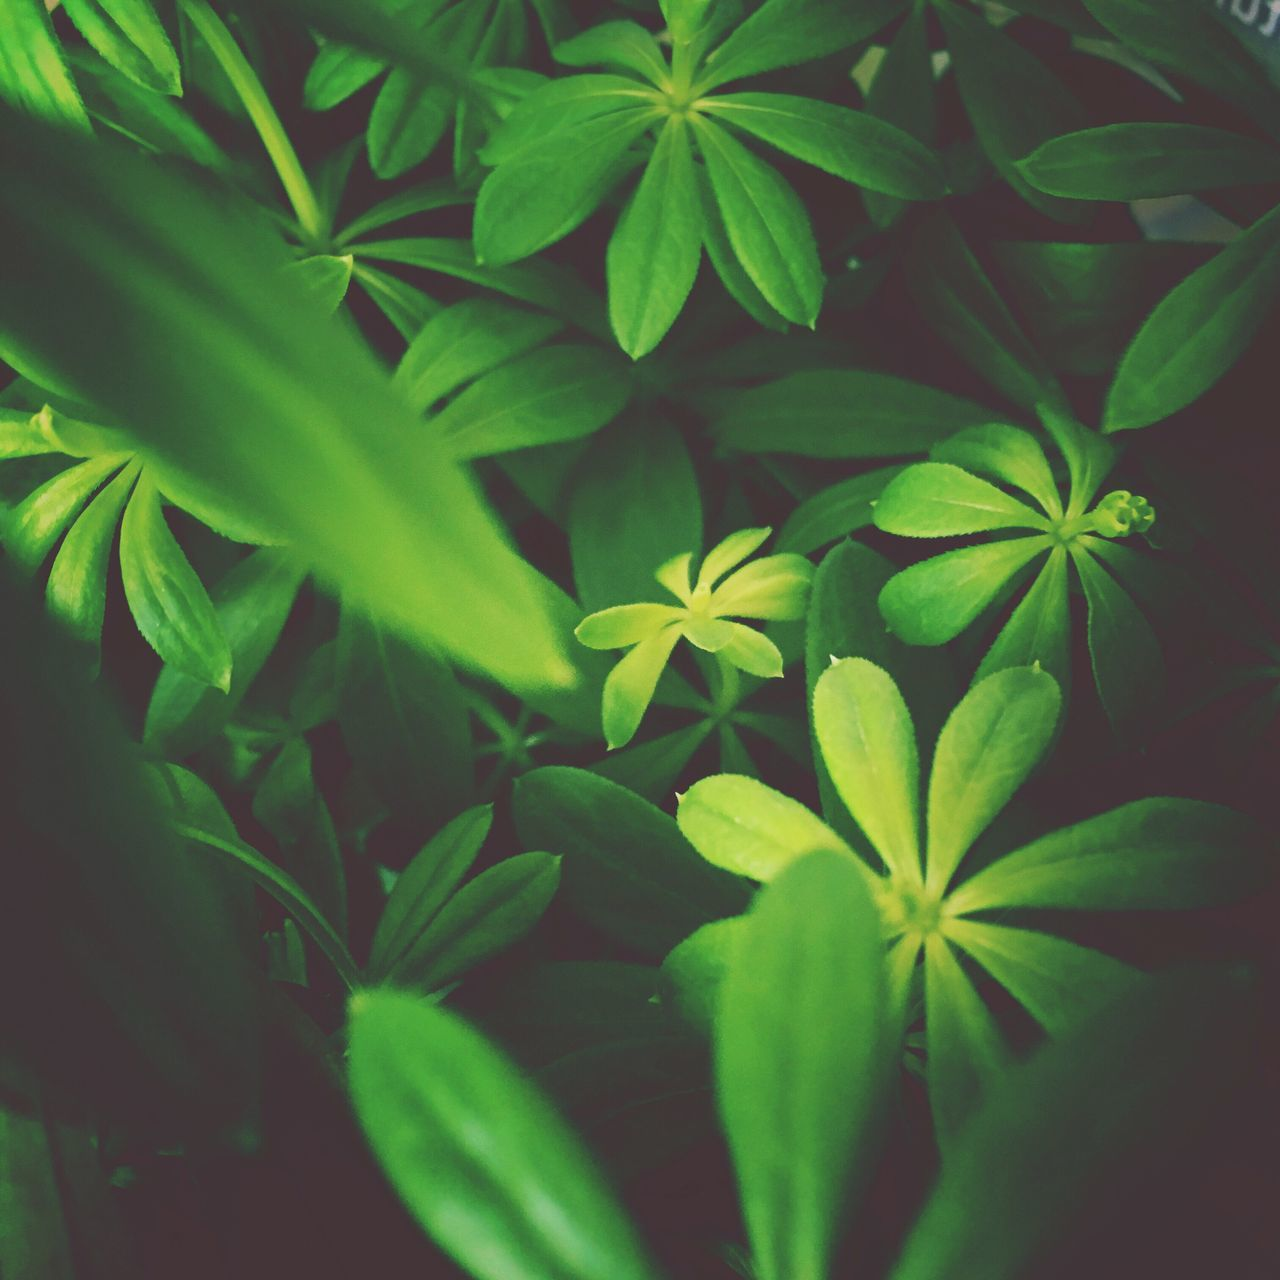 Woodruff Leaf Plant Growth Green Color Nature No People Fragility Beauty In Nature Close-up Outdoors Day Flower Freshness Periwinkle Flower Head Woodruff Herbs Spices